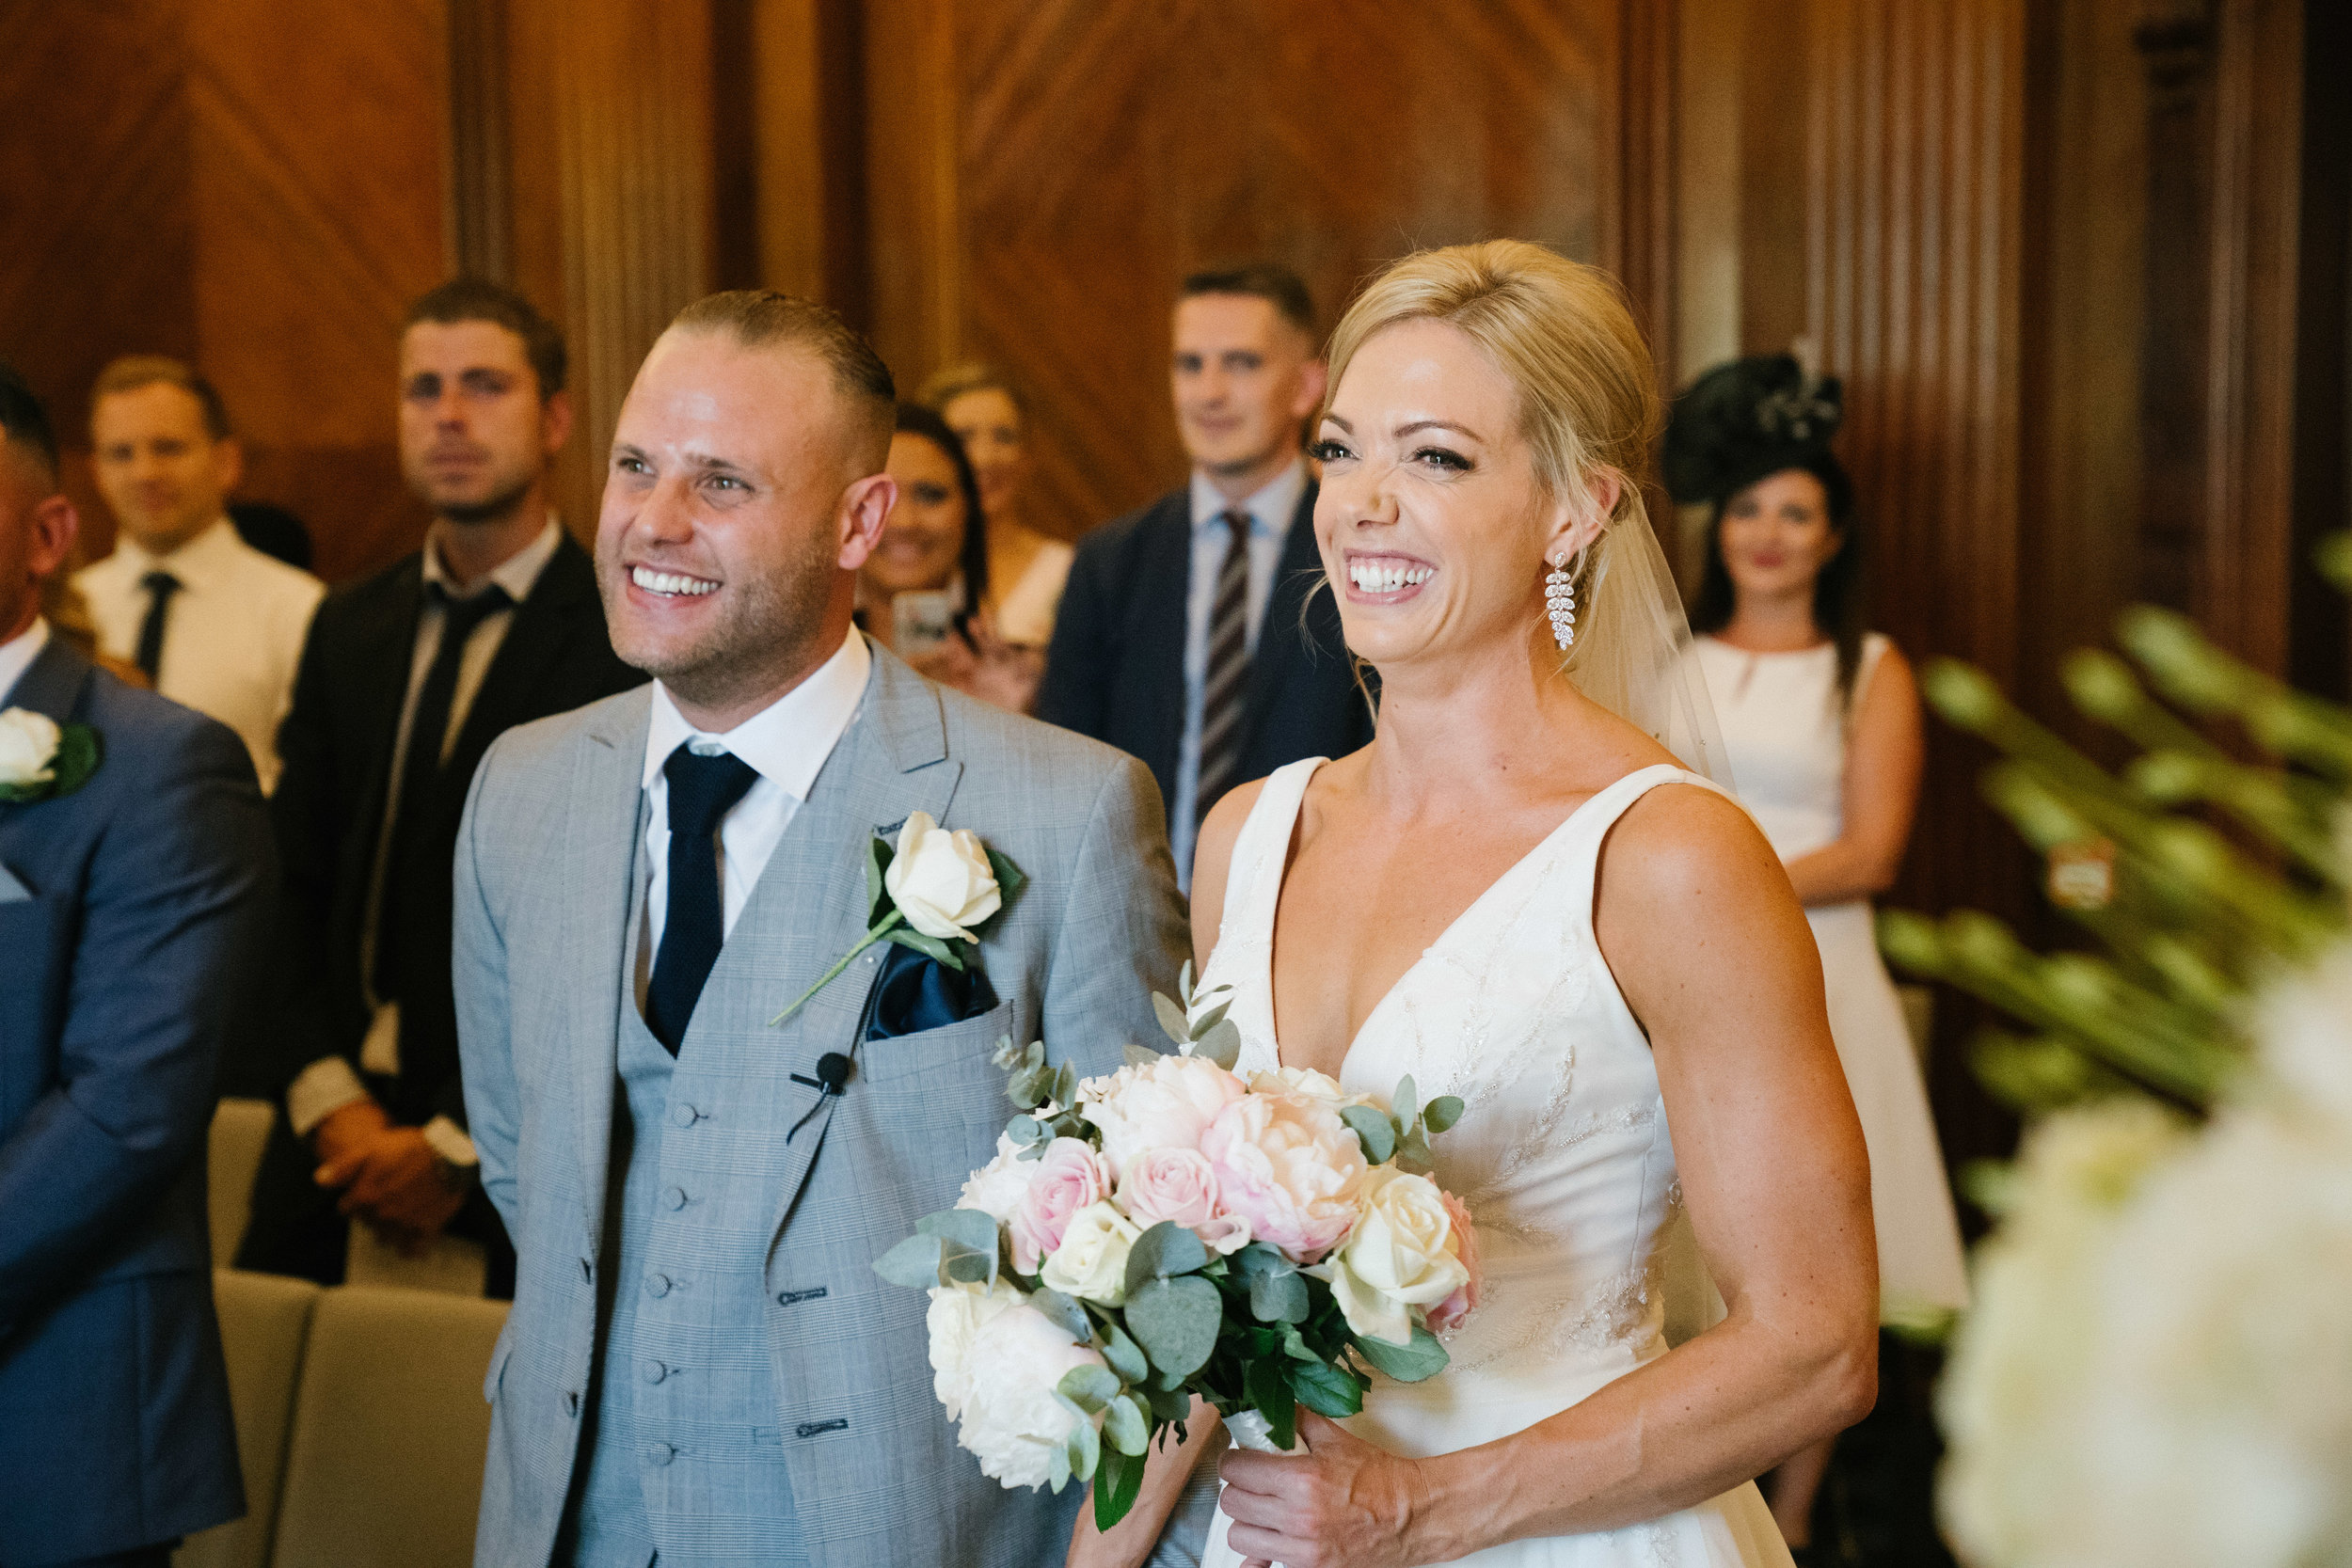 marylebone-old-town-hall-wedding-photography-videography-32